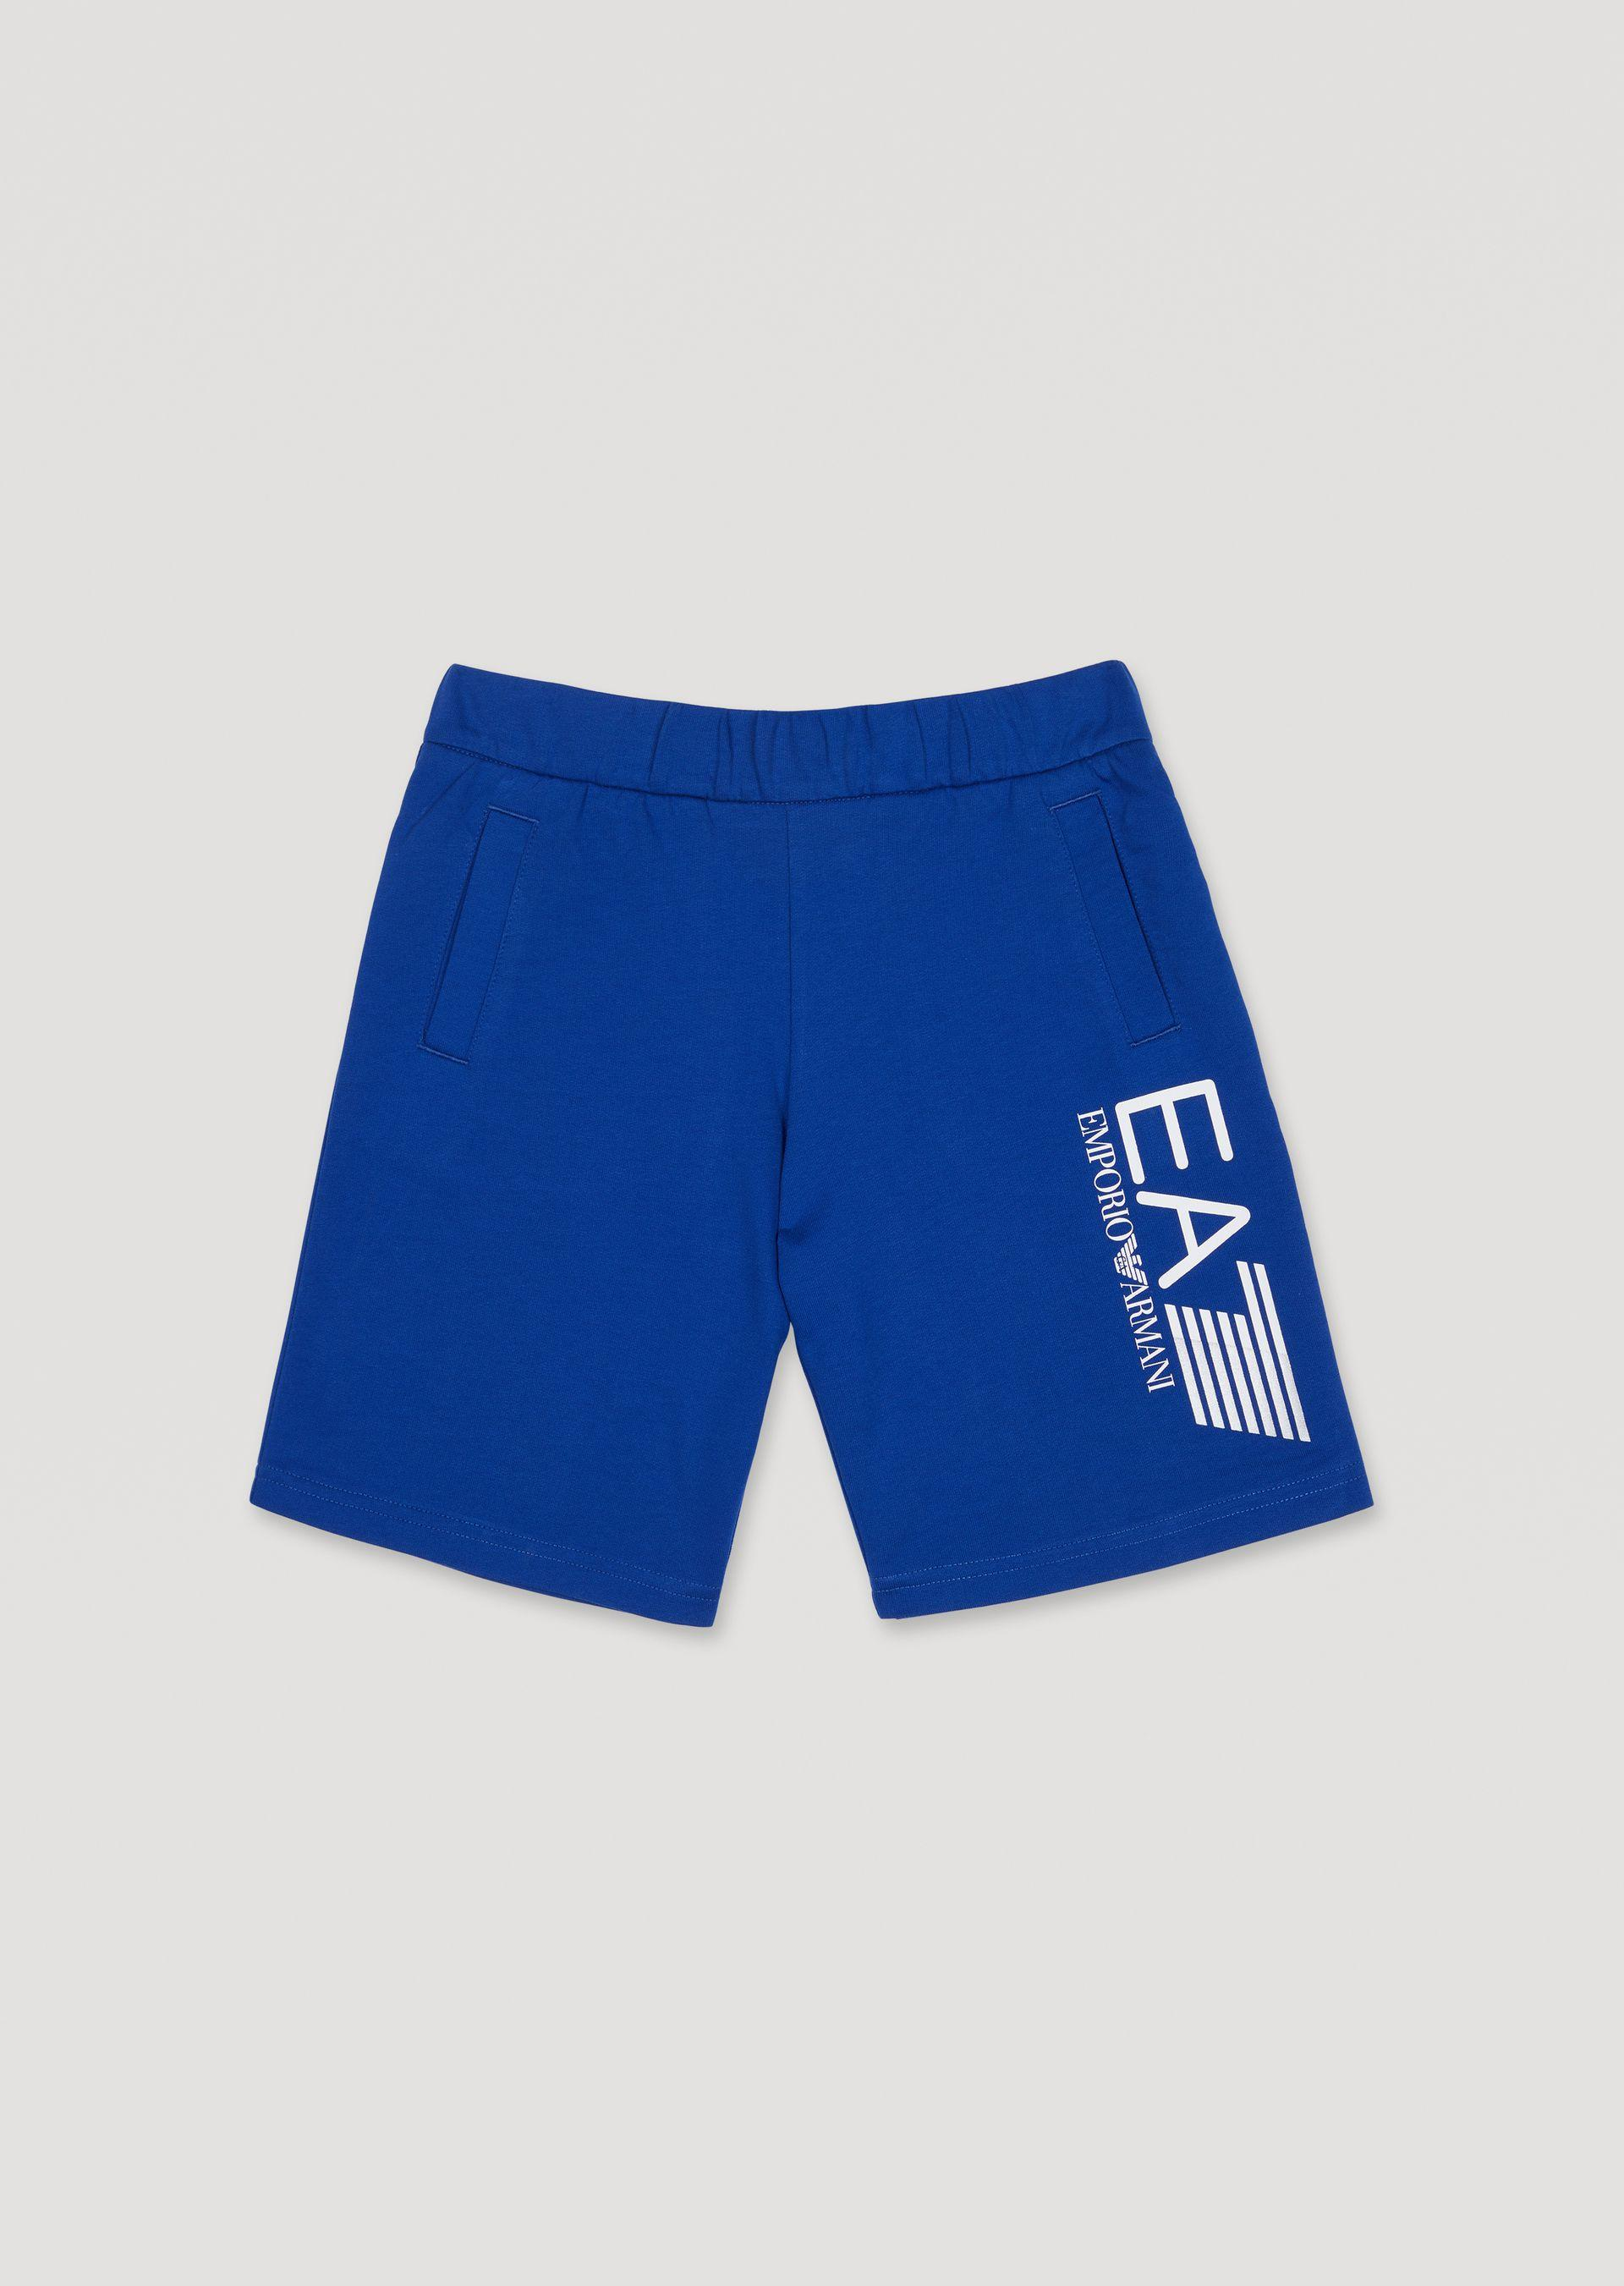 Emporio Armani Shorts - Item 13167970 In China Blue ; Navy Blue ; Red